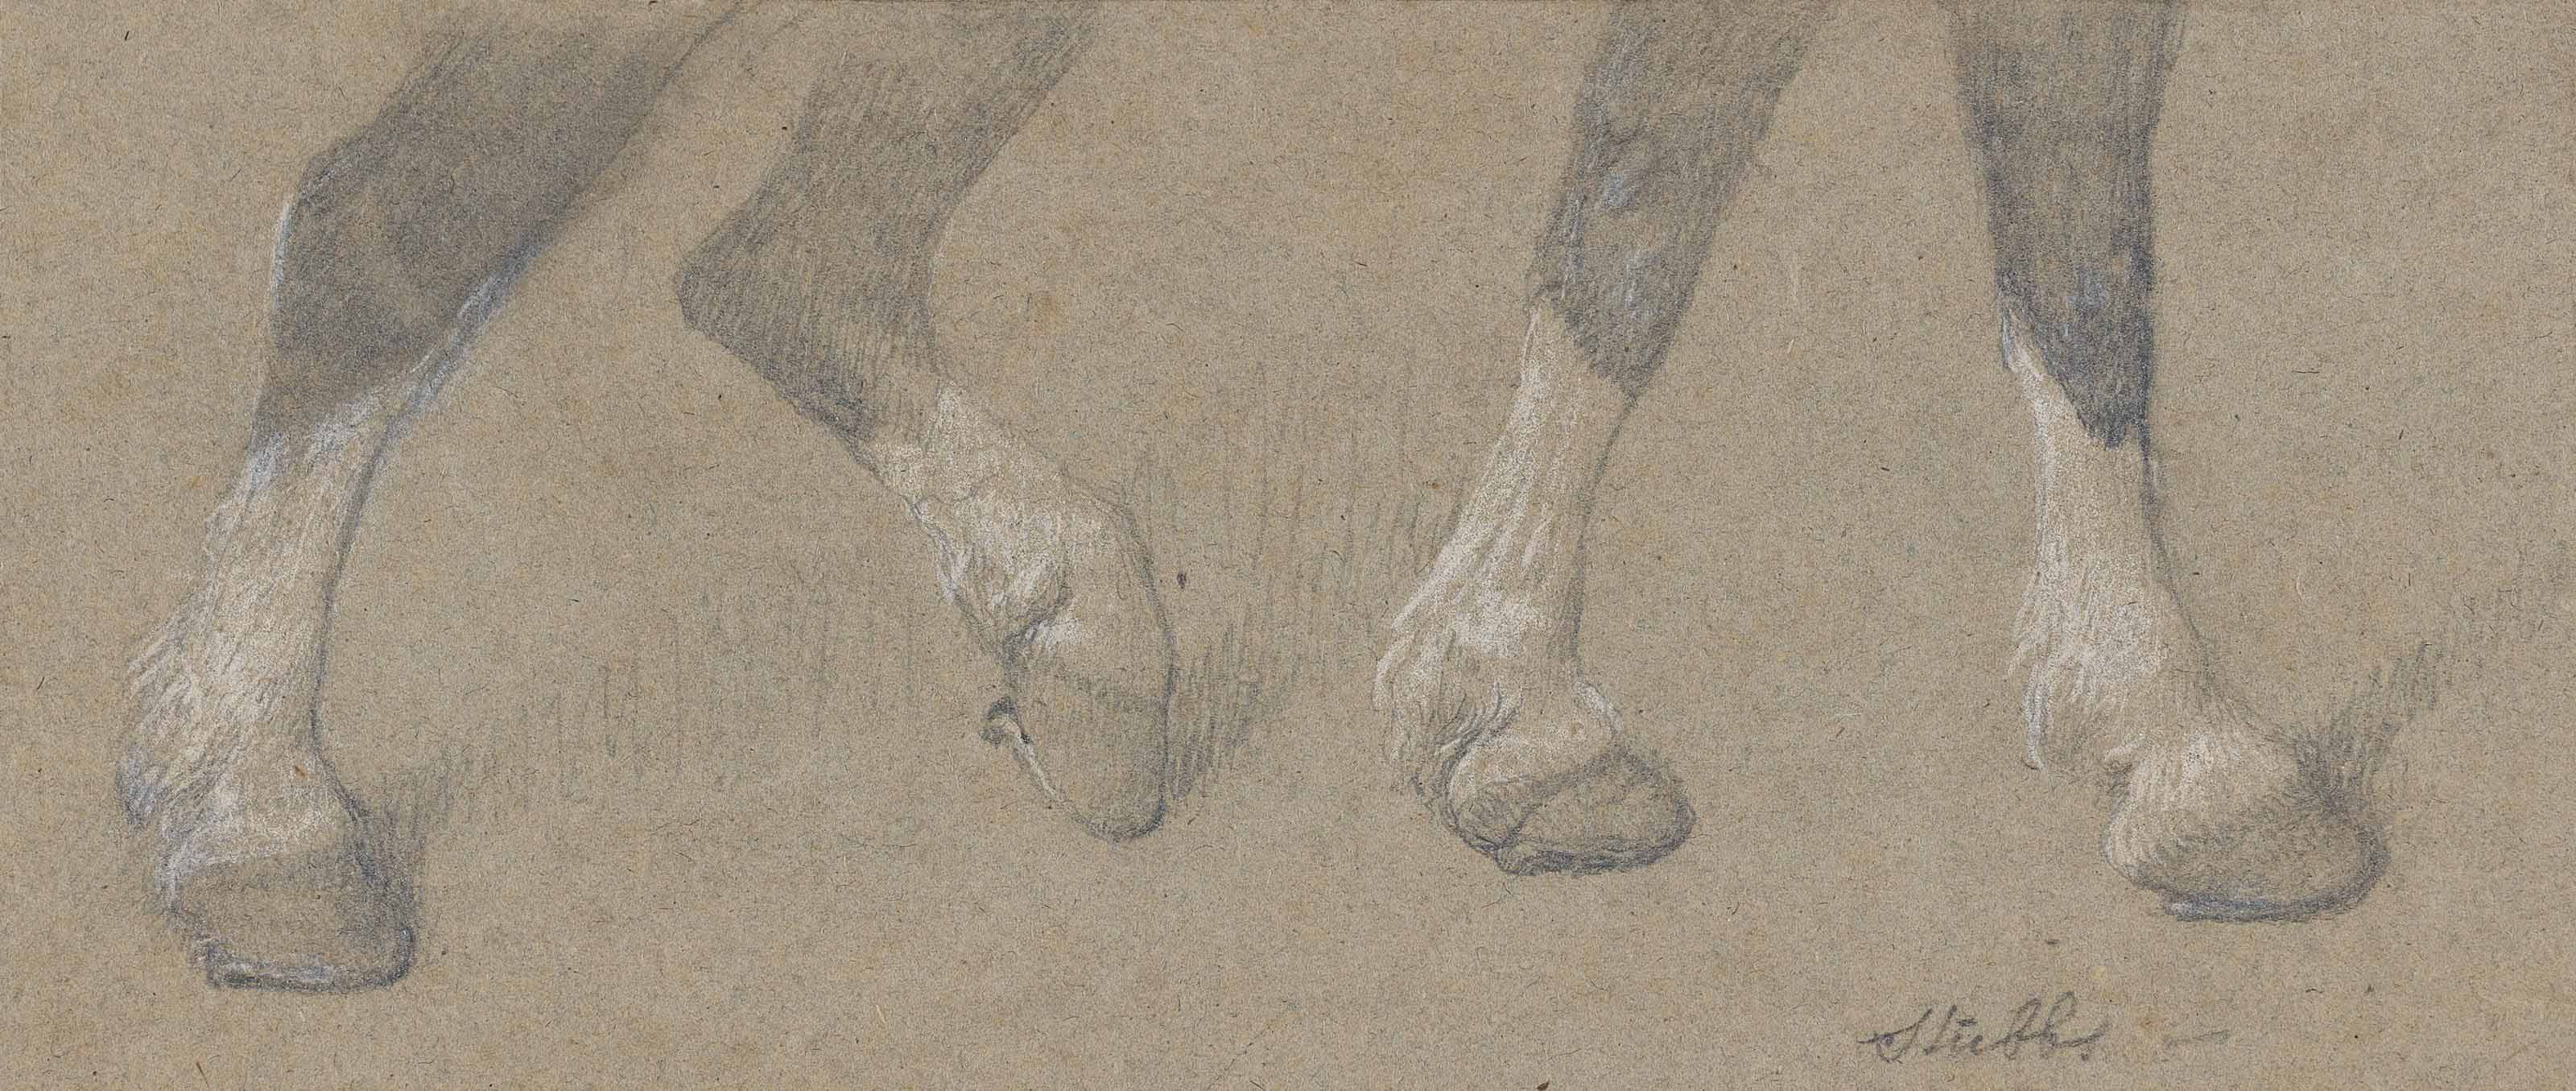 Study of the legs of a draught-horse pulling a harrow, driven on by a farm labourer